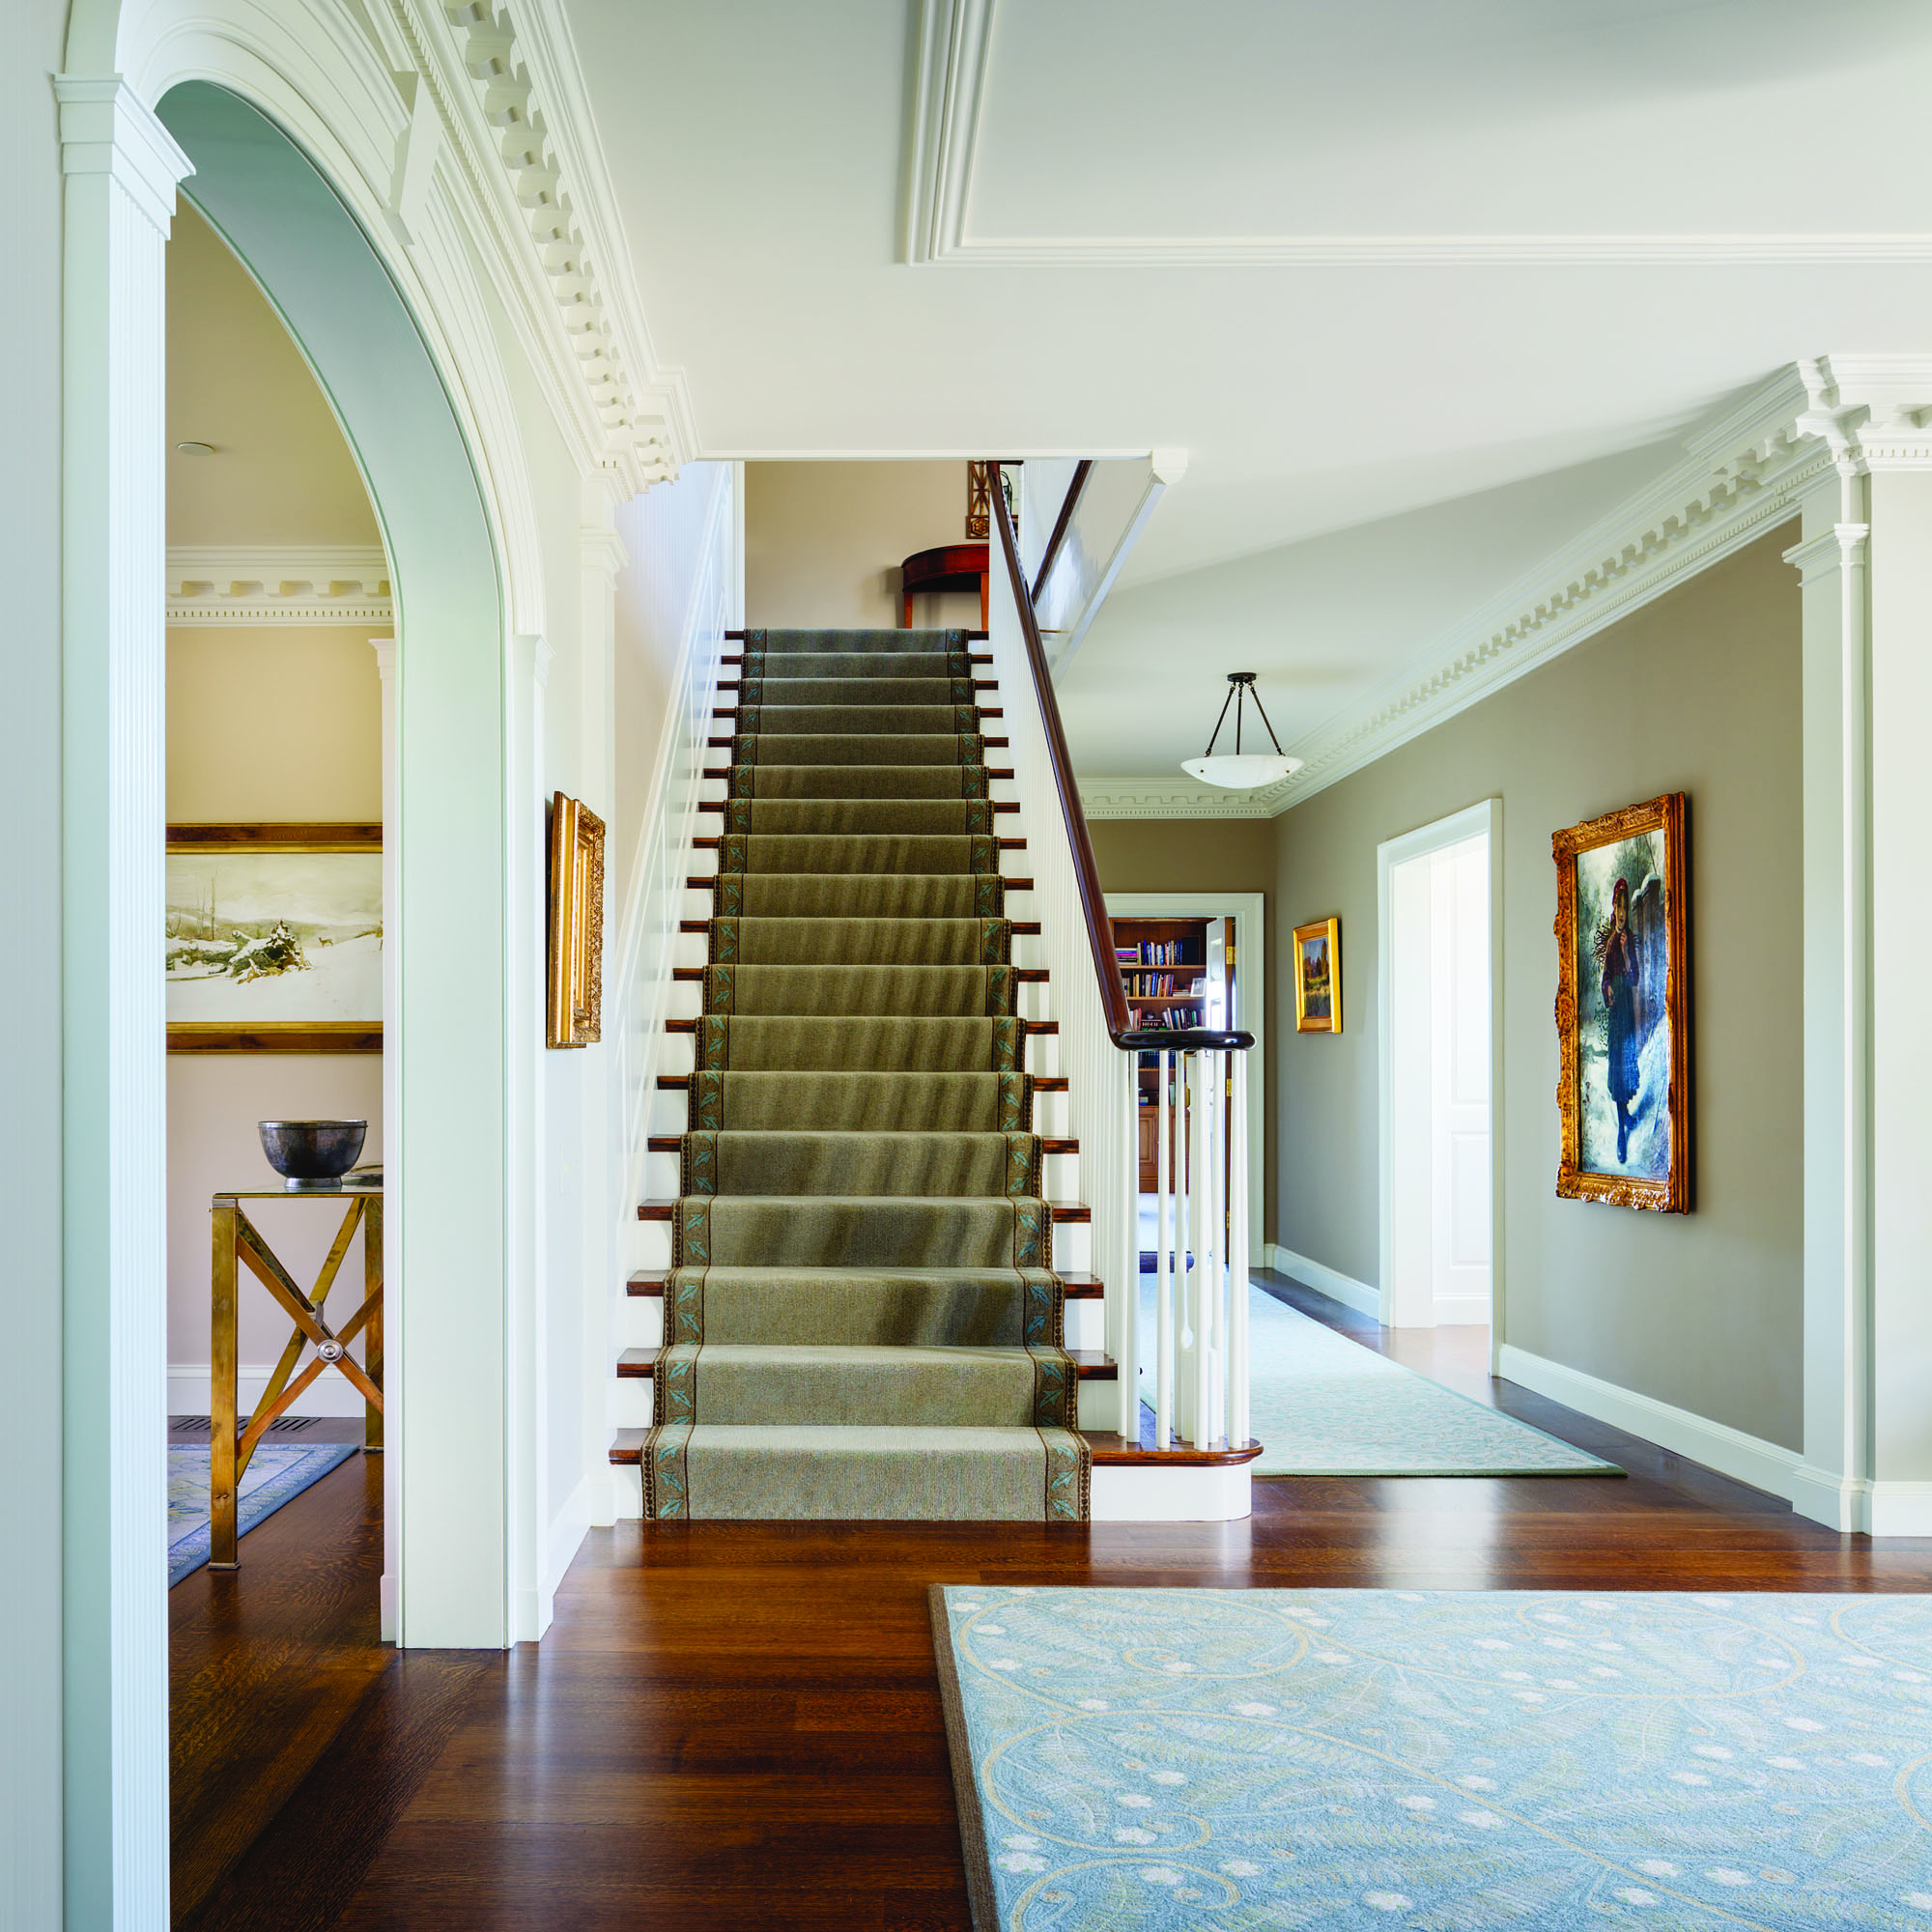 The interior stair hall is classically designed.